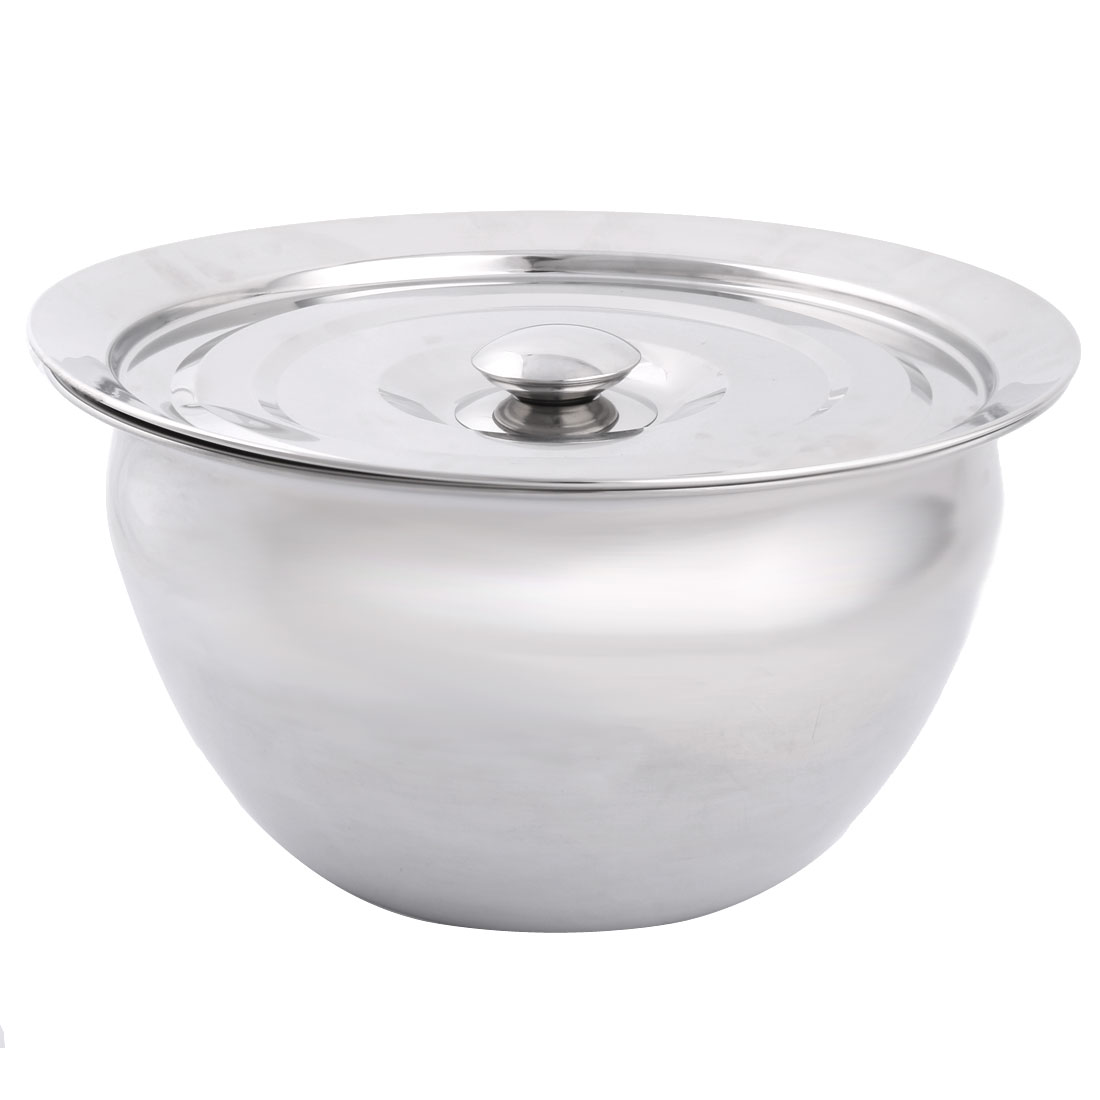 Stainless Steel Salt Sugar Serving Bowl Seasoning Container Condiment 29.5cm Dia